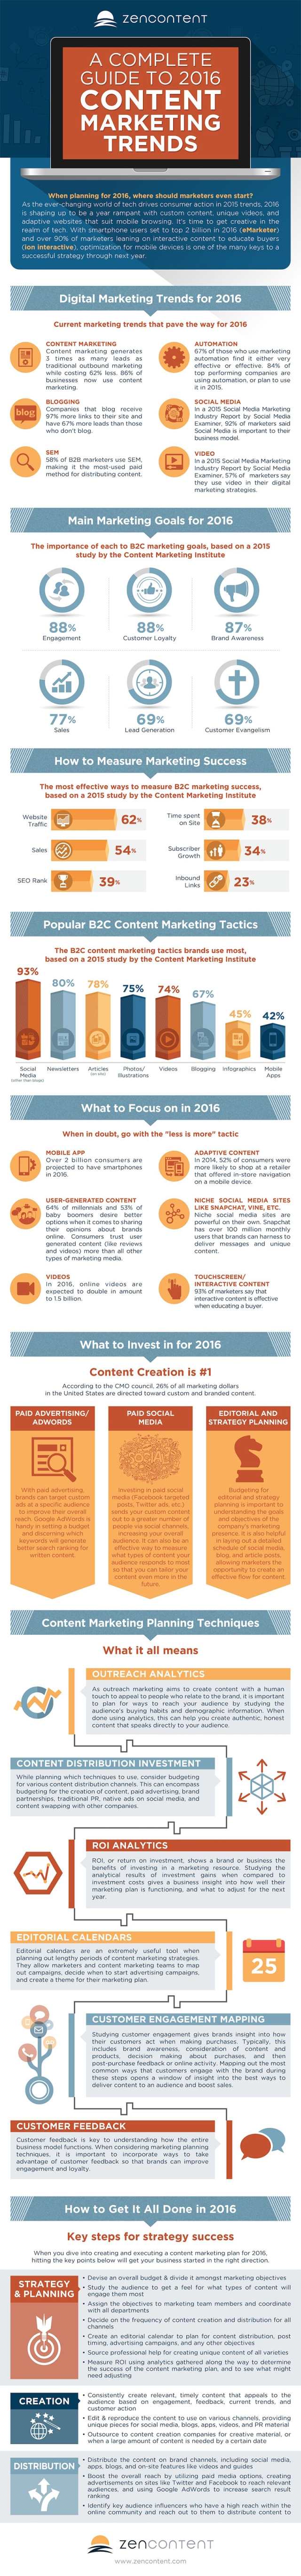 Marketing Trends for 2016 What to Focus on Next Year